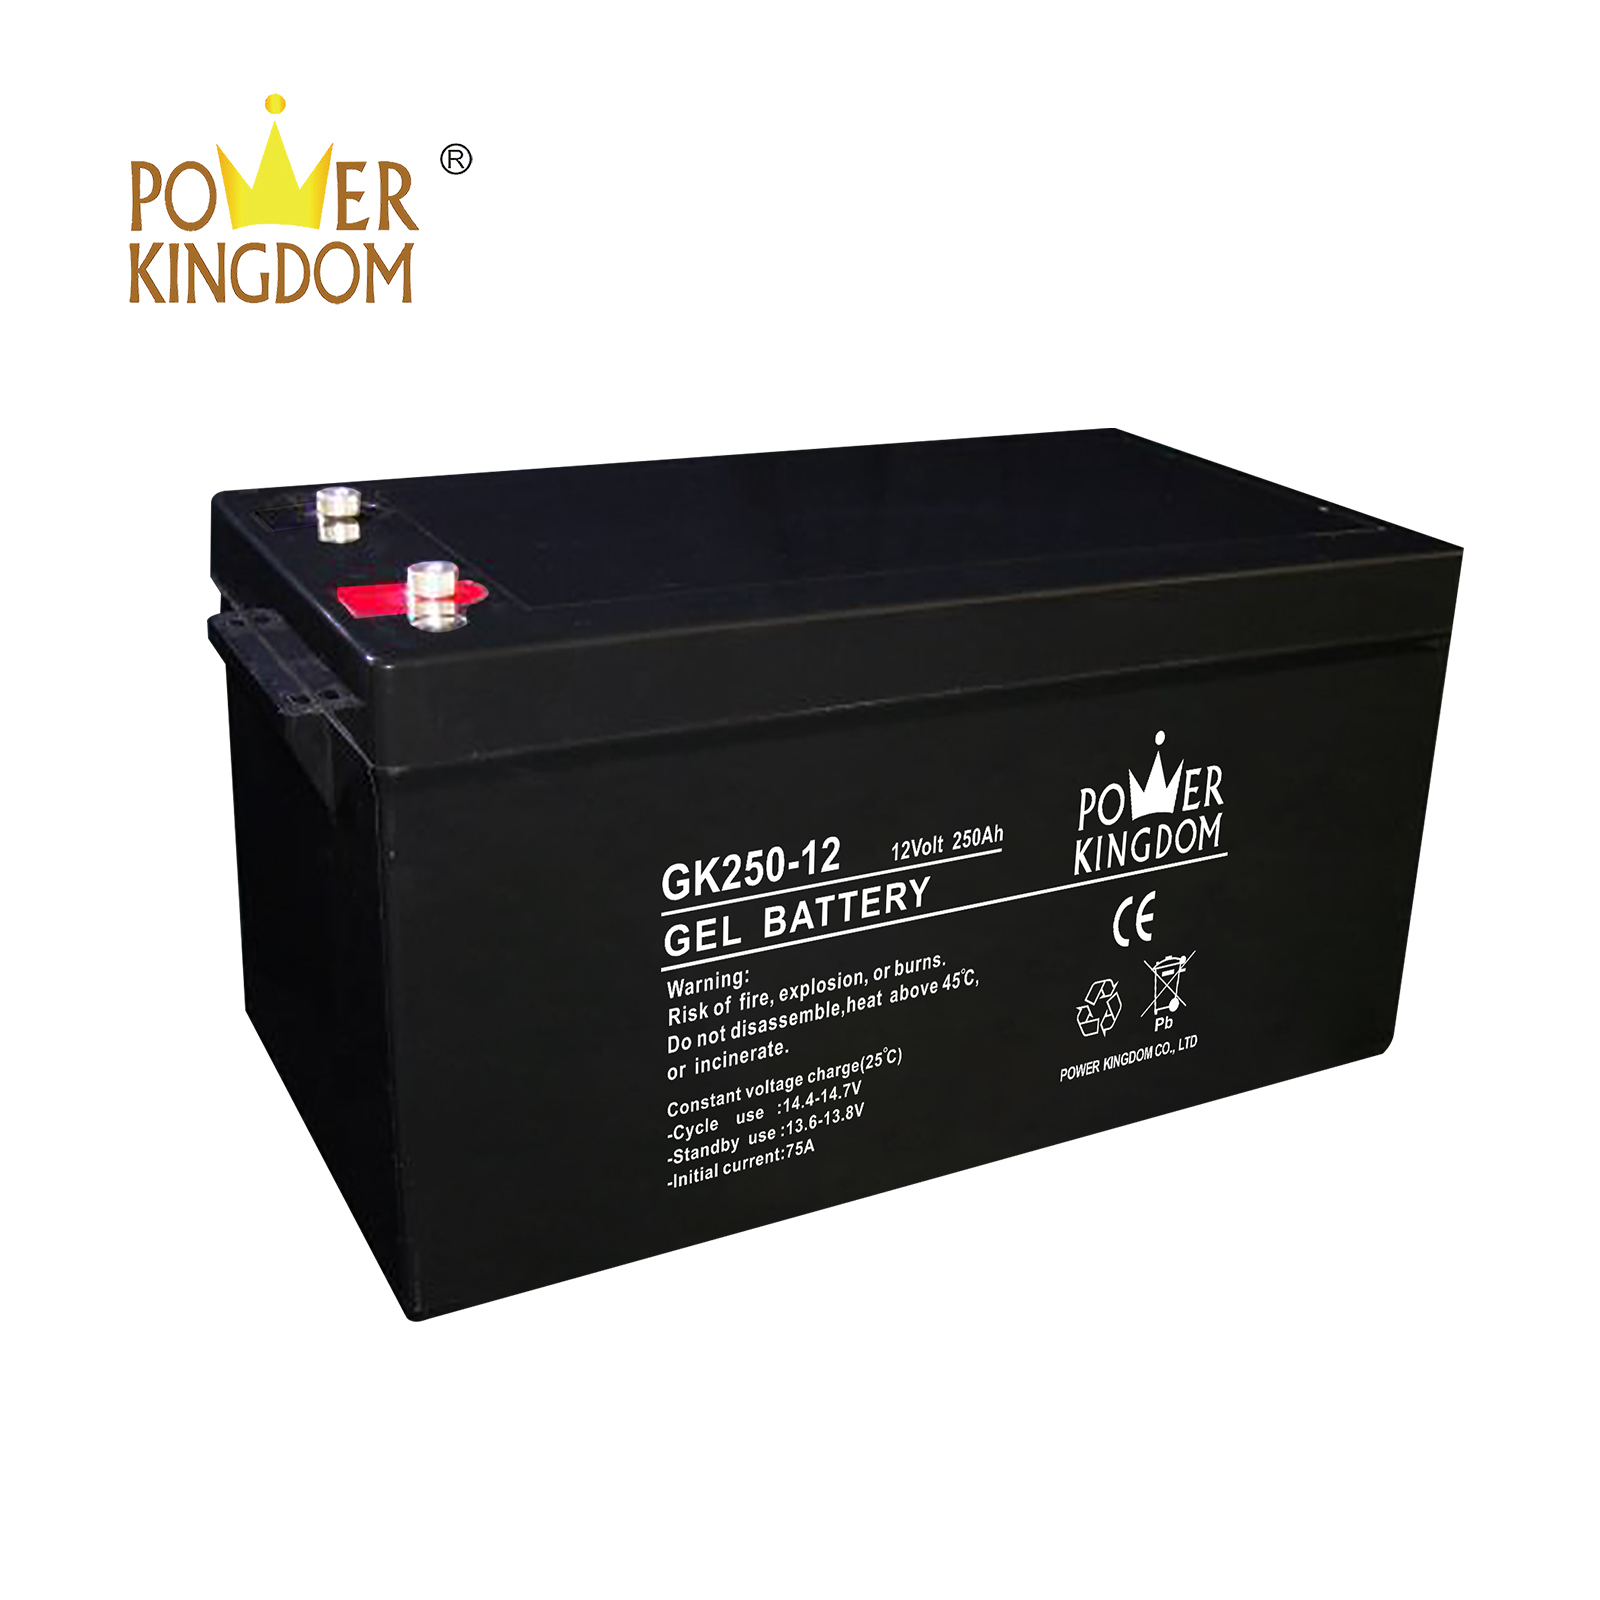 Power Kingdom lead acid battery storage manufacturers solor system-2